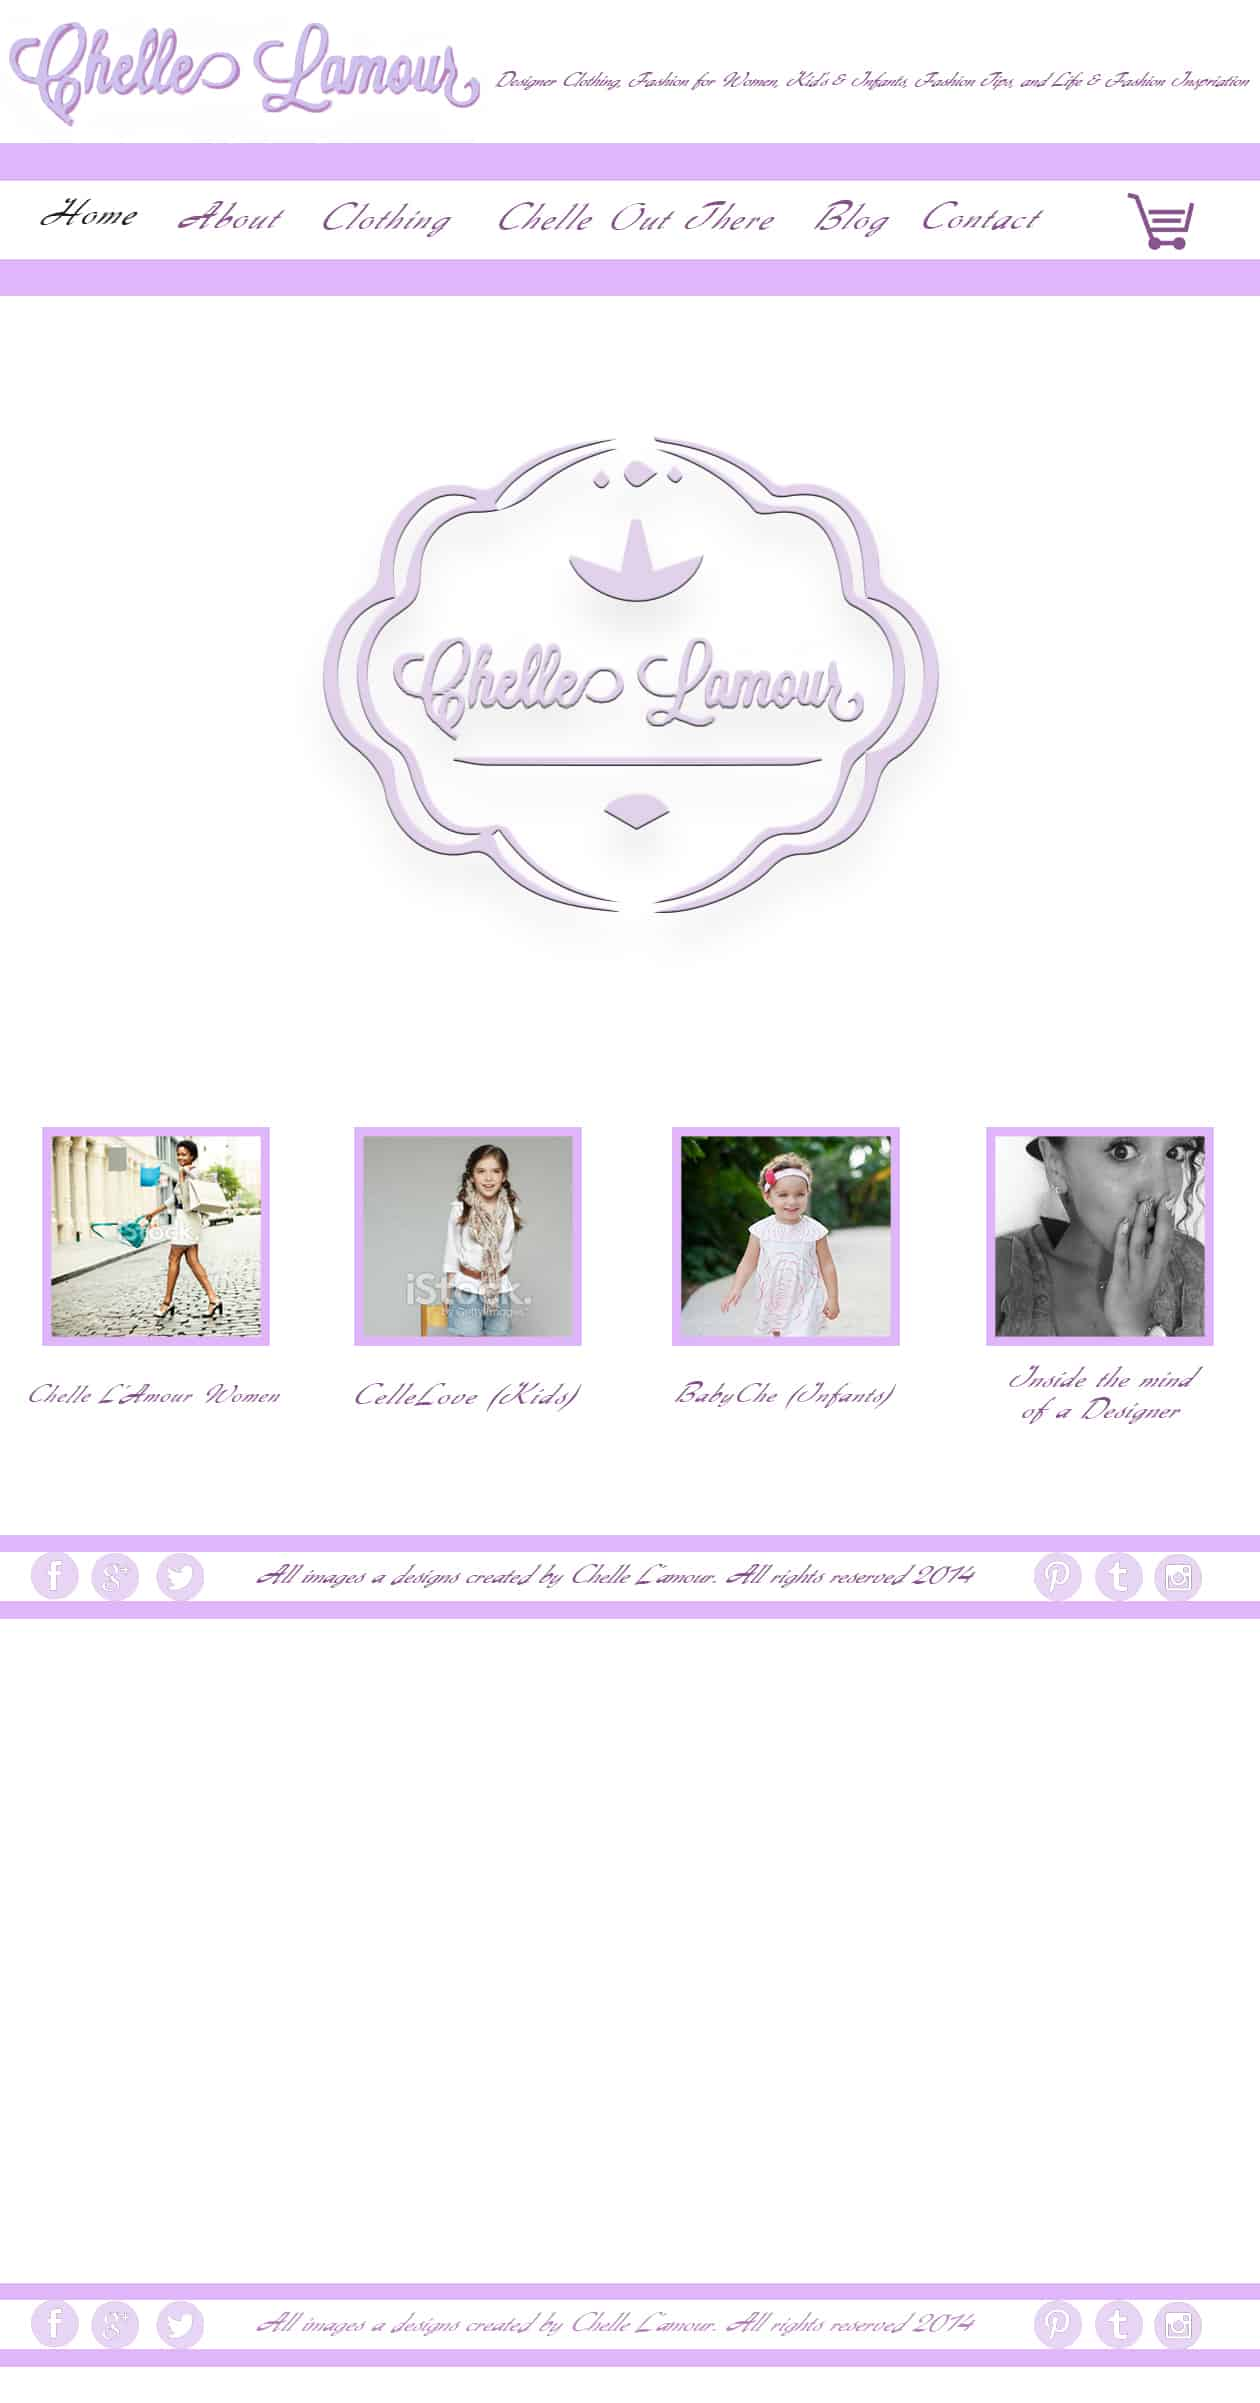 Chelle Lamour Website Mockup Home Page